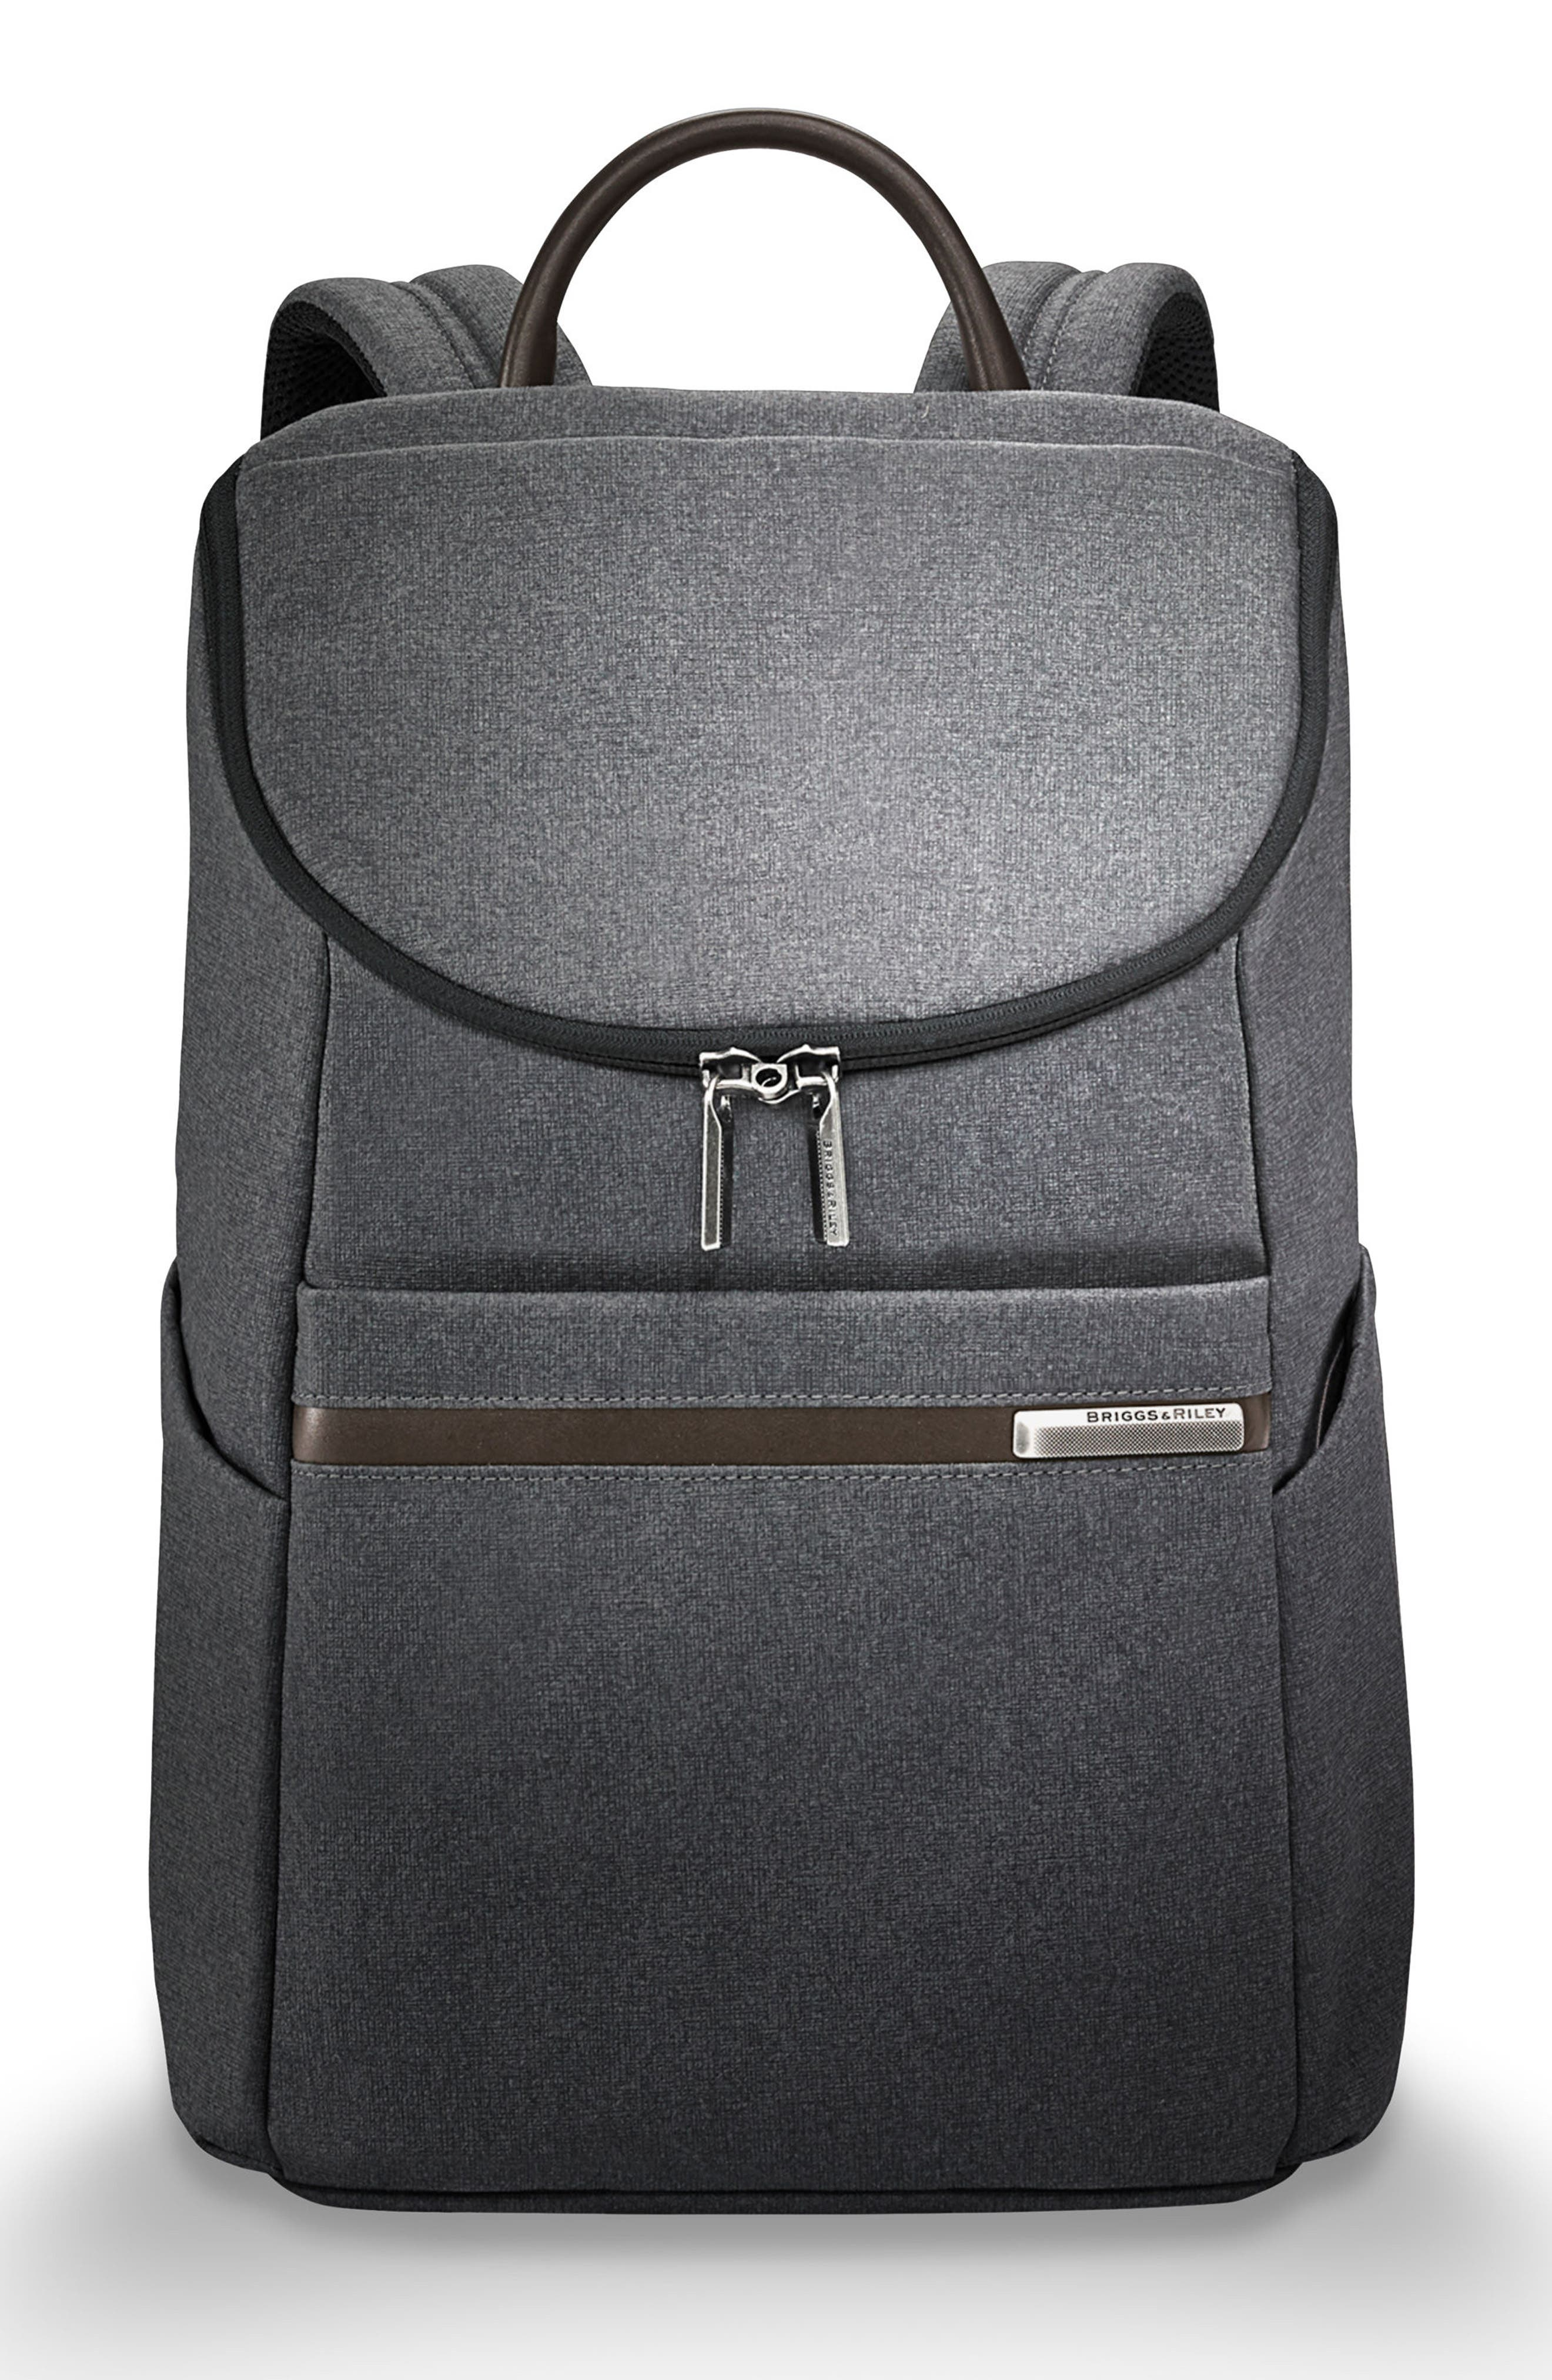 Kinzie Street Backpack,                         Main,                         color,